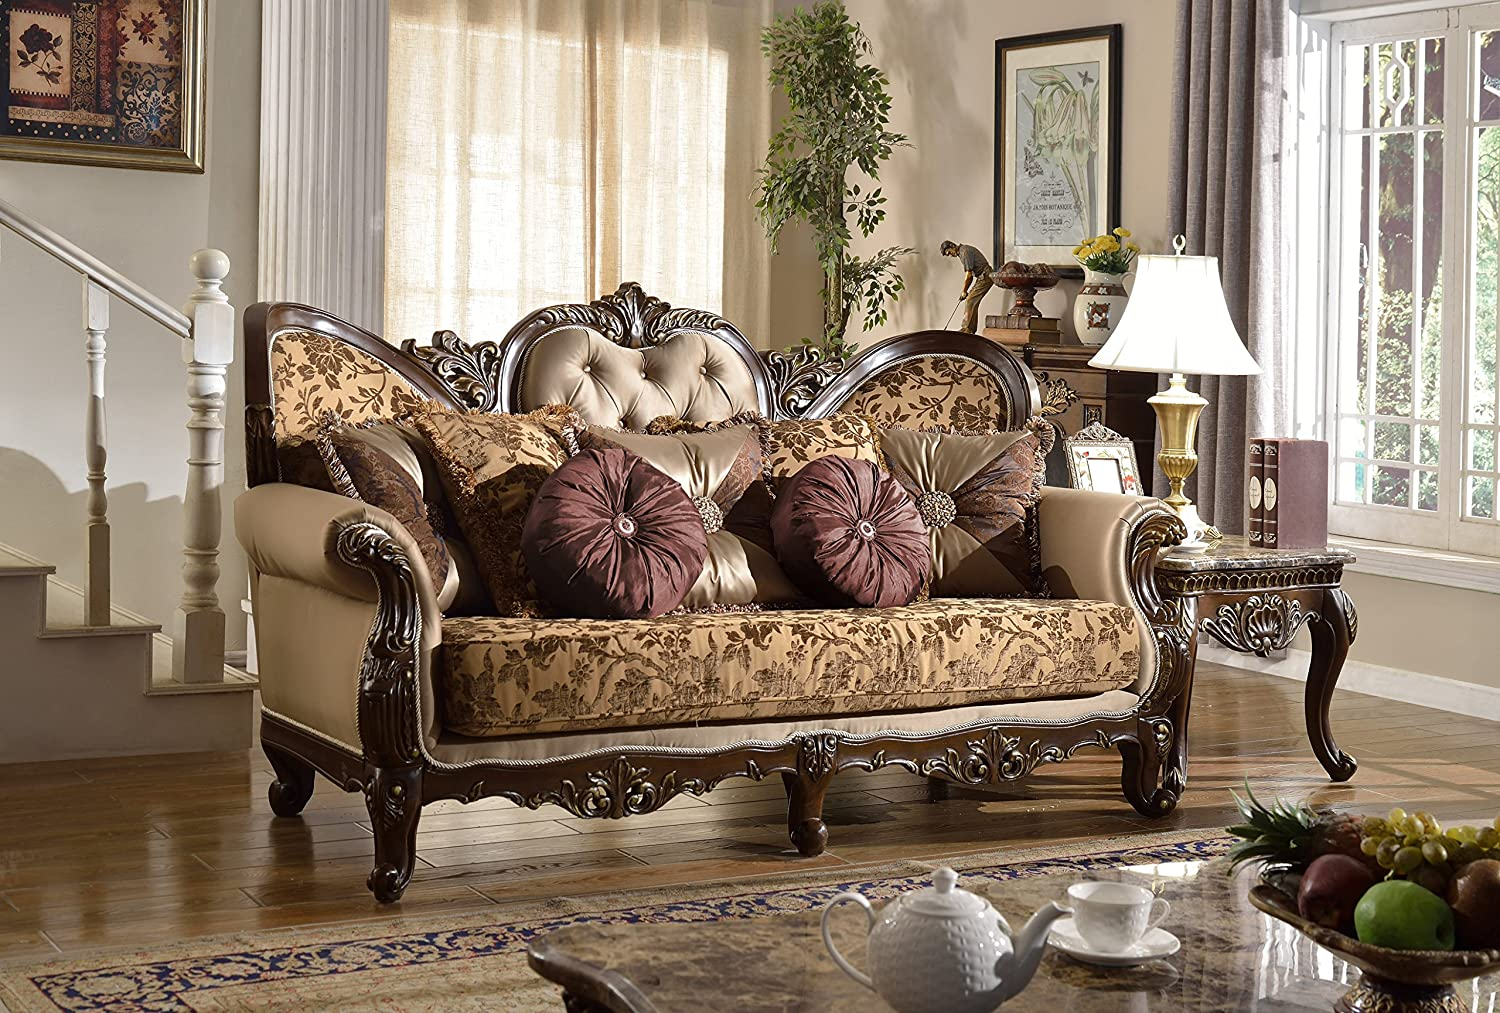 Meridian furniture 610 s catania solid wood upholstered armchair with imported fabrics button tufted back cushion and traditional hand carved designs